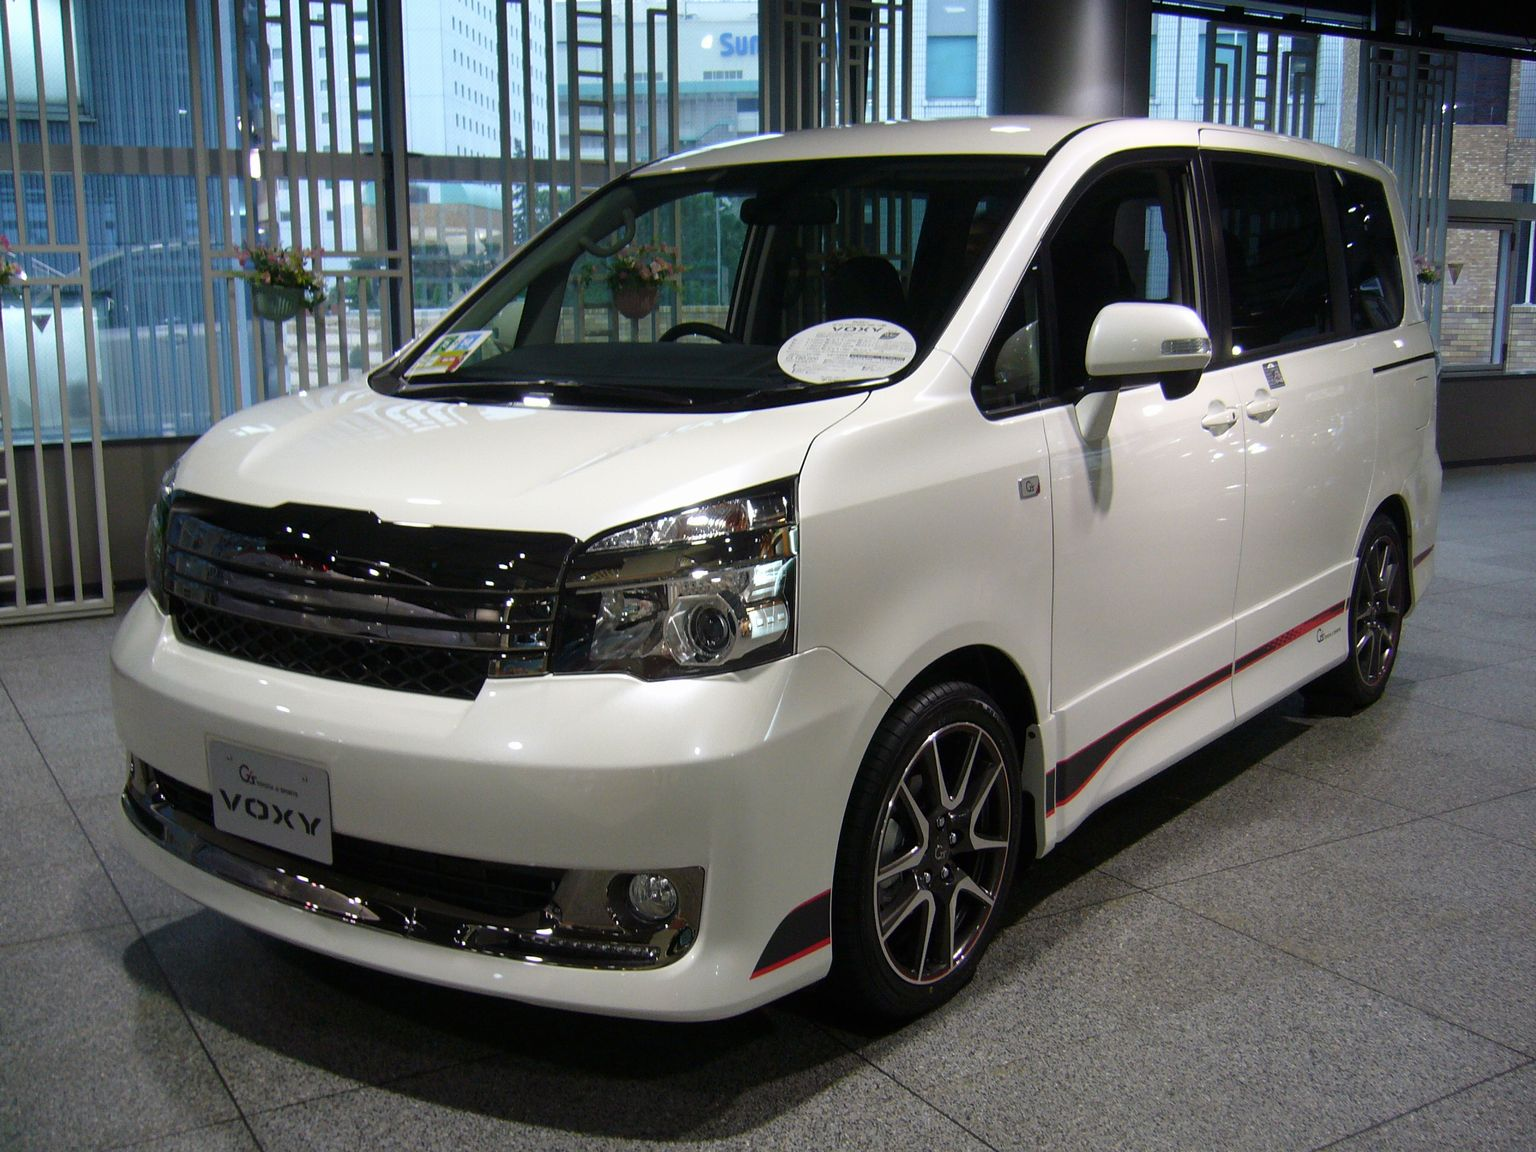 Toyota Voxy Photos Photogallery With 4 Pics Carsbase Com